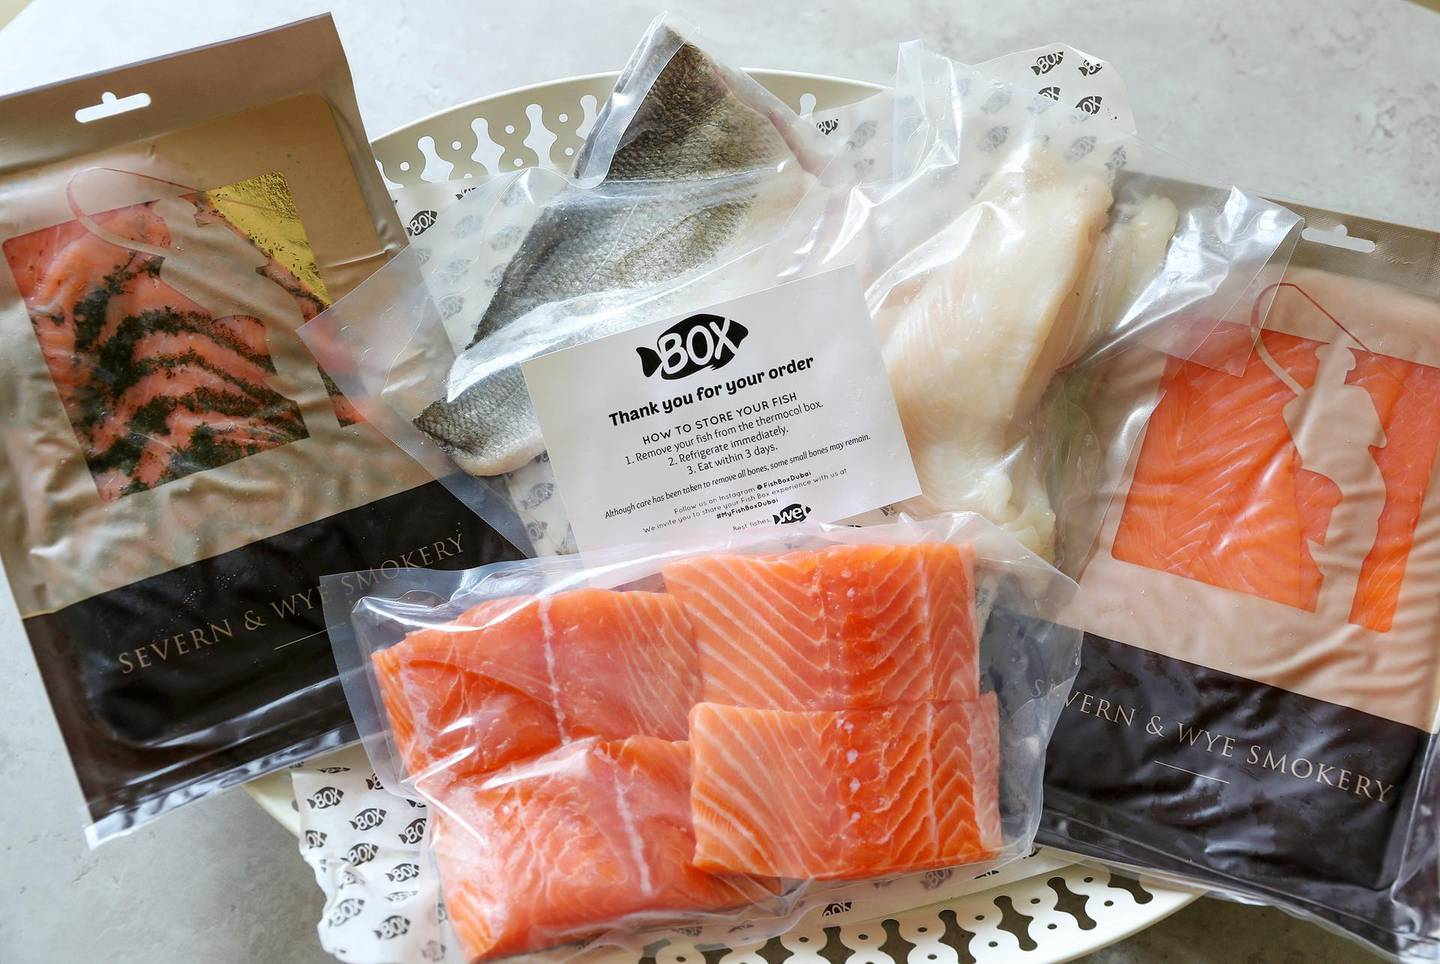 Dubai, United Arab Emirates - August 30th, 2017: Fish Box make a delivery. Feature on comparisons on the different online grocery options. Wednesday, August 30th, 2017 at Mira, Dubai